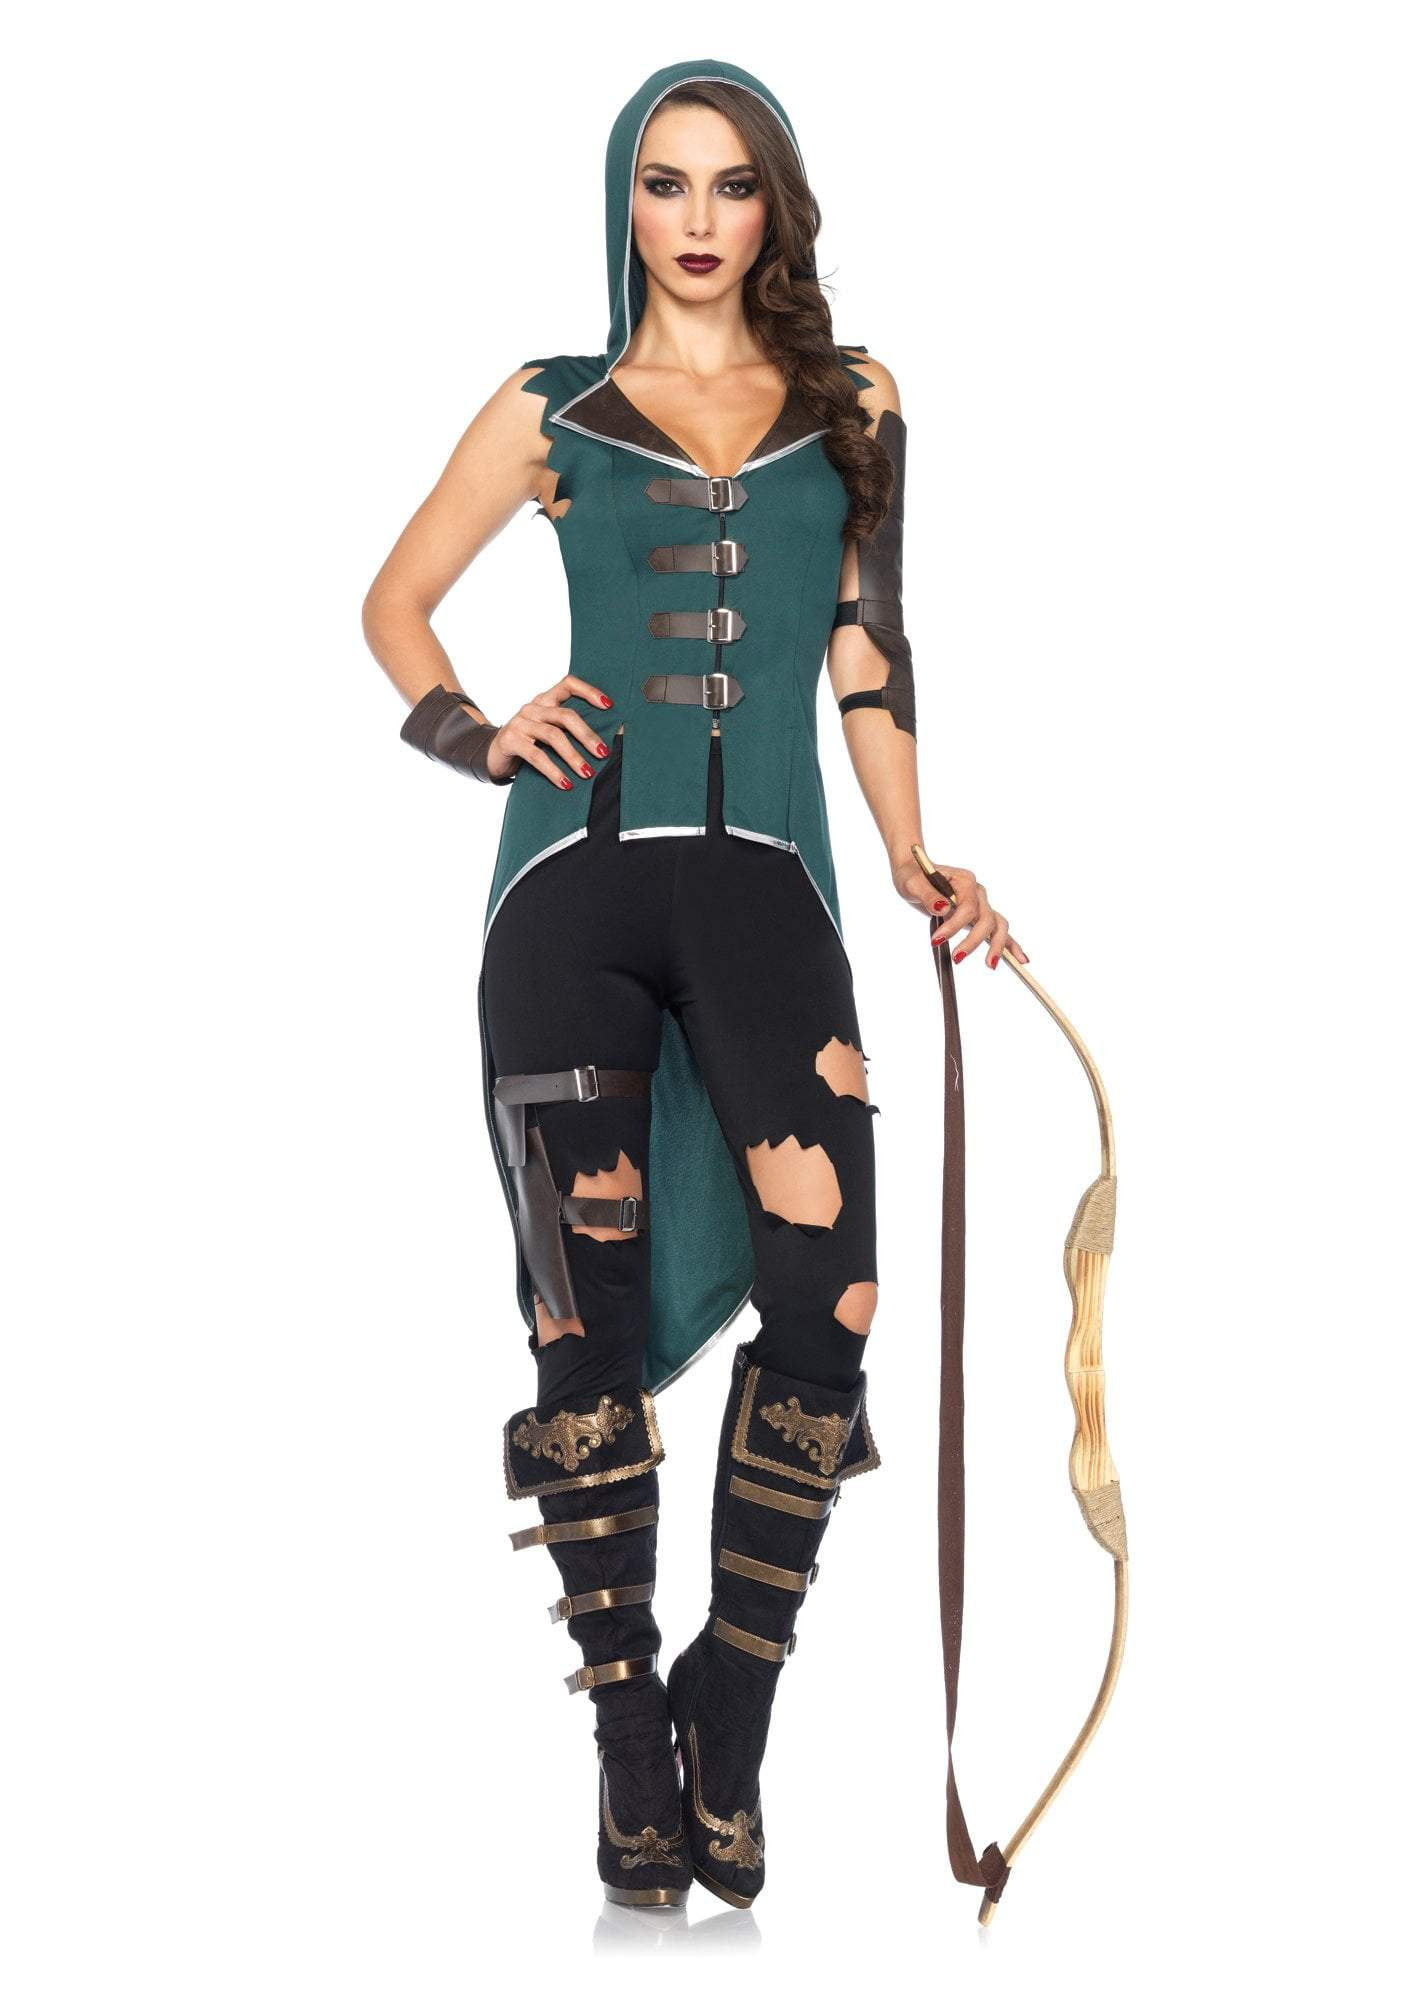 Leg Avenue Costumes LARGE Adult Rebel Robin Hood Costume